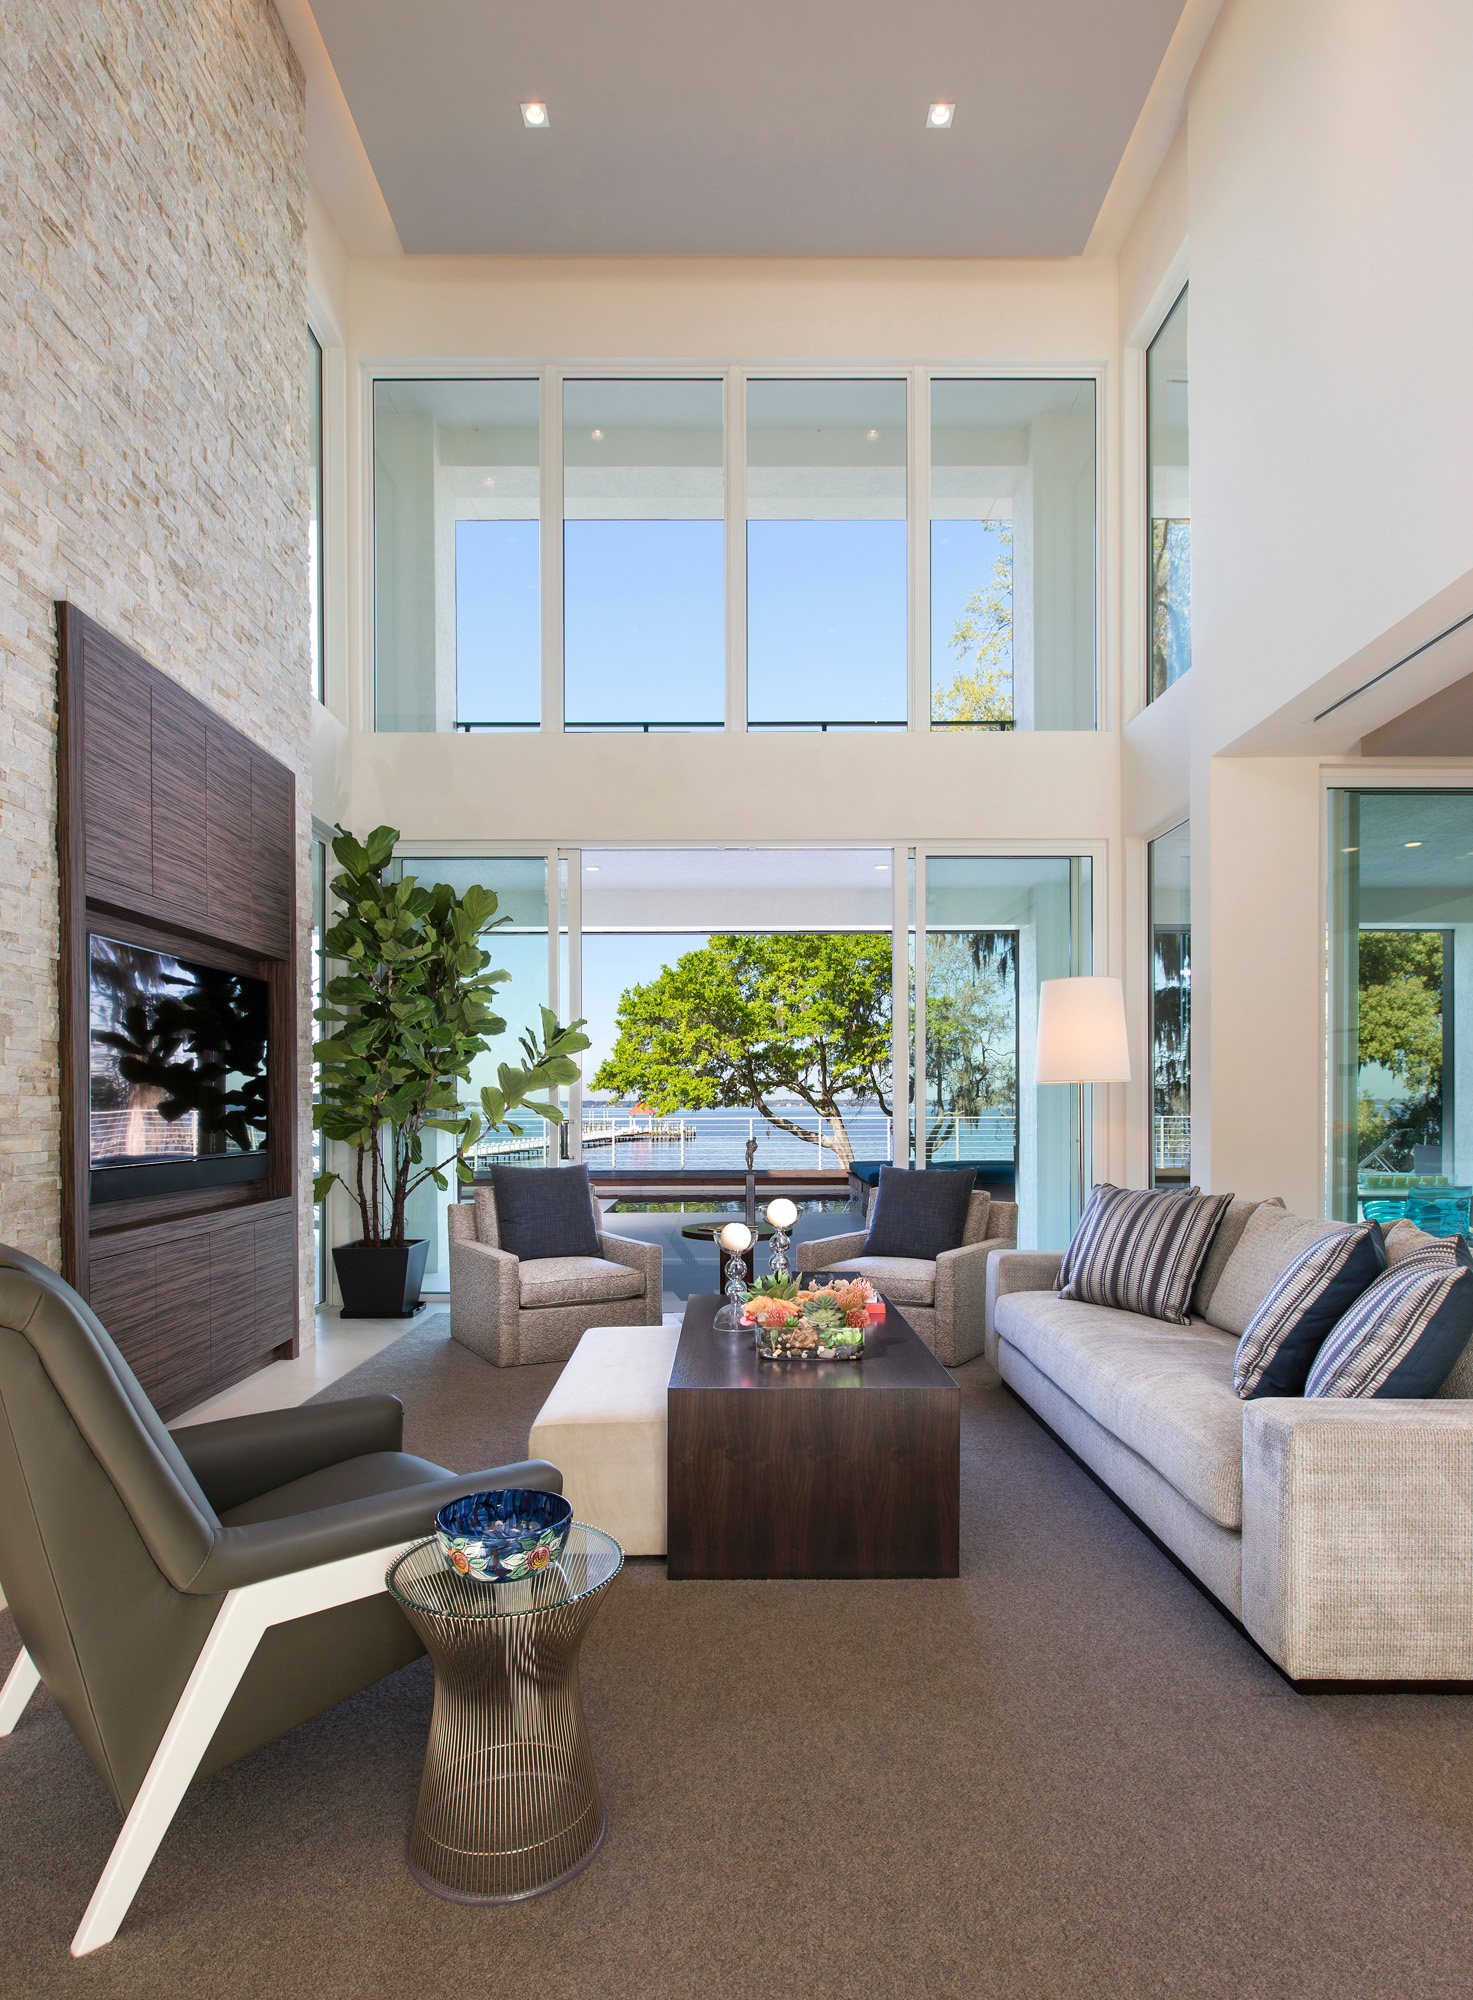 Modern Home Design By Phil Kean In Jacksonville, Florida